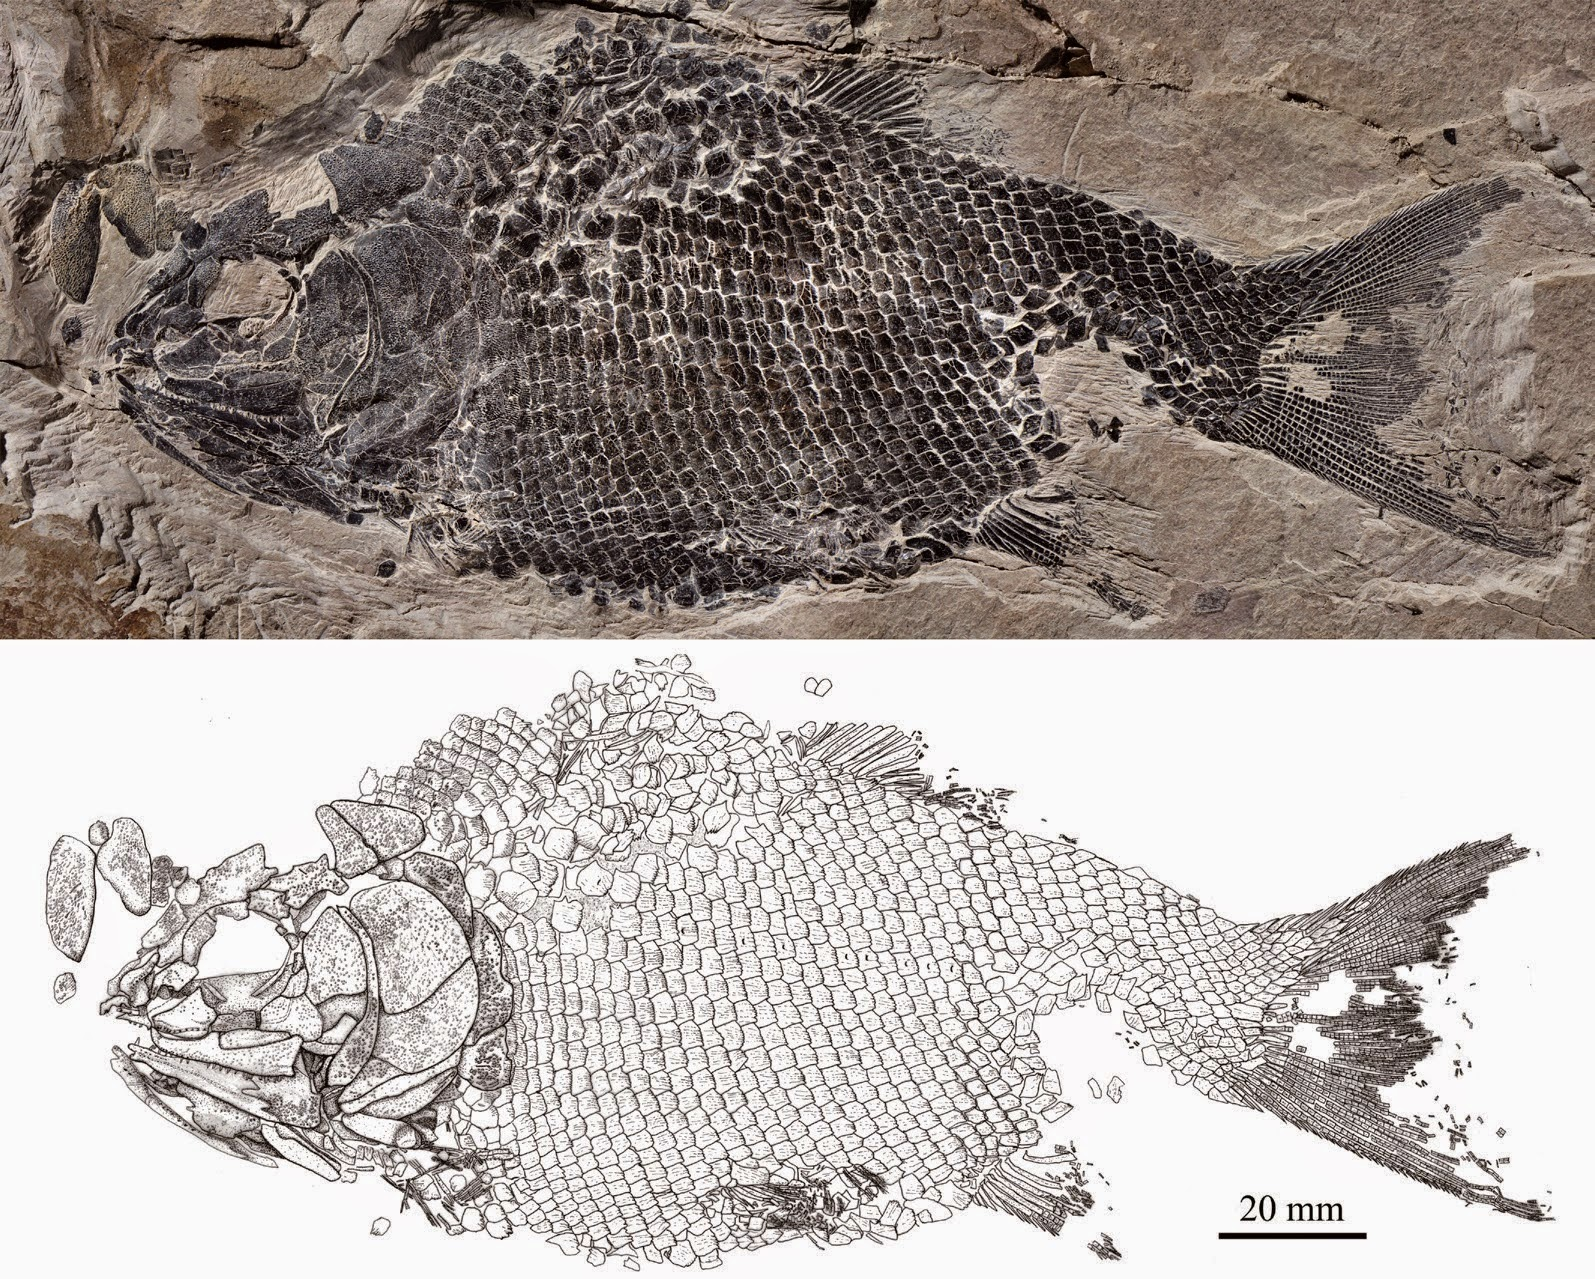 http://sciencythoughts.blogspot.co.uk/2015/04/ionoscopiform-fish-from-middle-triassic.html